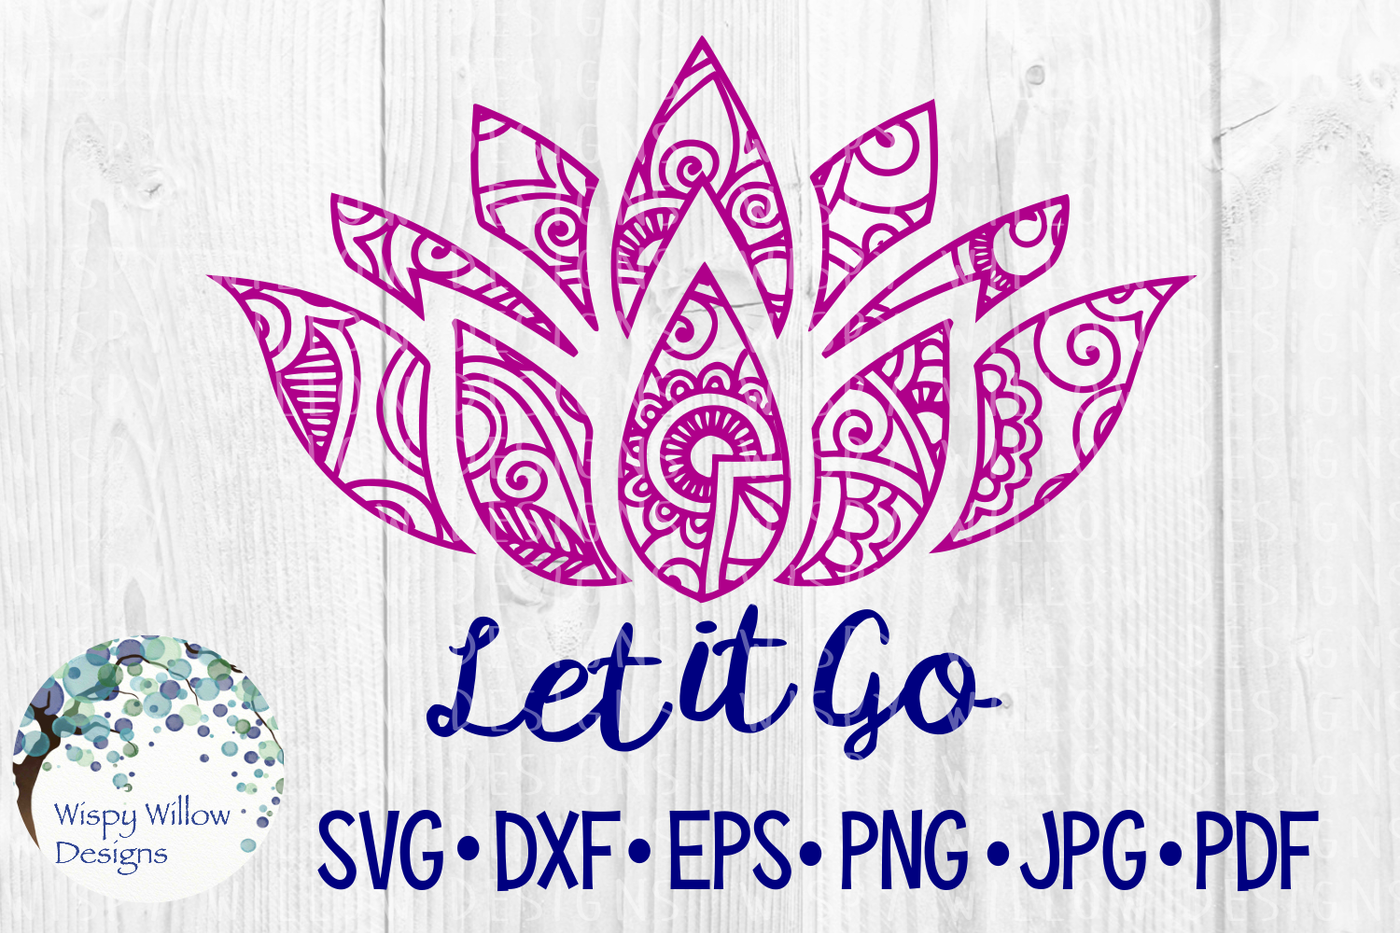 Let It Go Lotus Mandala Svg Dxf Eps Png Jpg Pdf By Wispy Willow